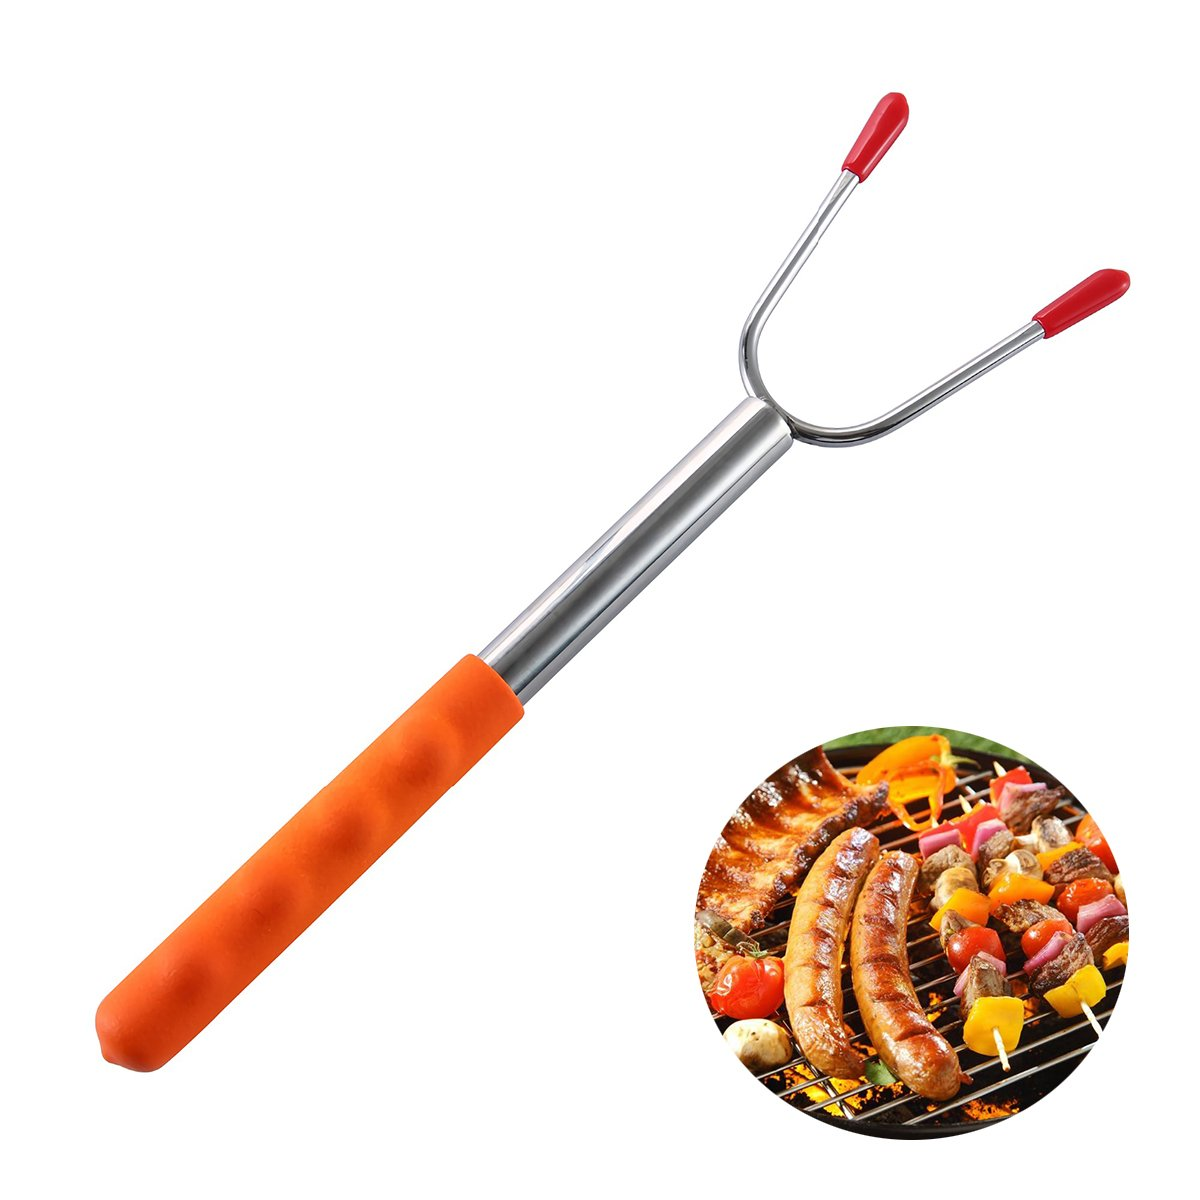 Dpijer Marshmallow Roasting Sticks Telescoping Skewers Stainless Steel Extendable BBQ Hot Dog Fork Outdoor For Camping,Campfire,Bonfire Kids,Extra Long 3.75 FT-45''